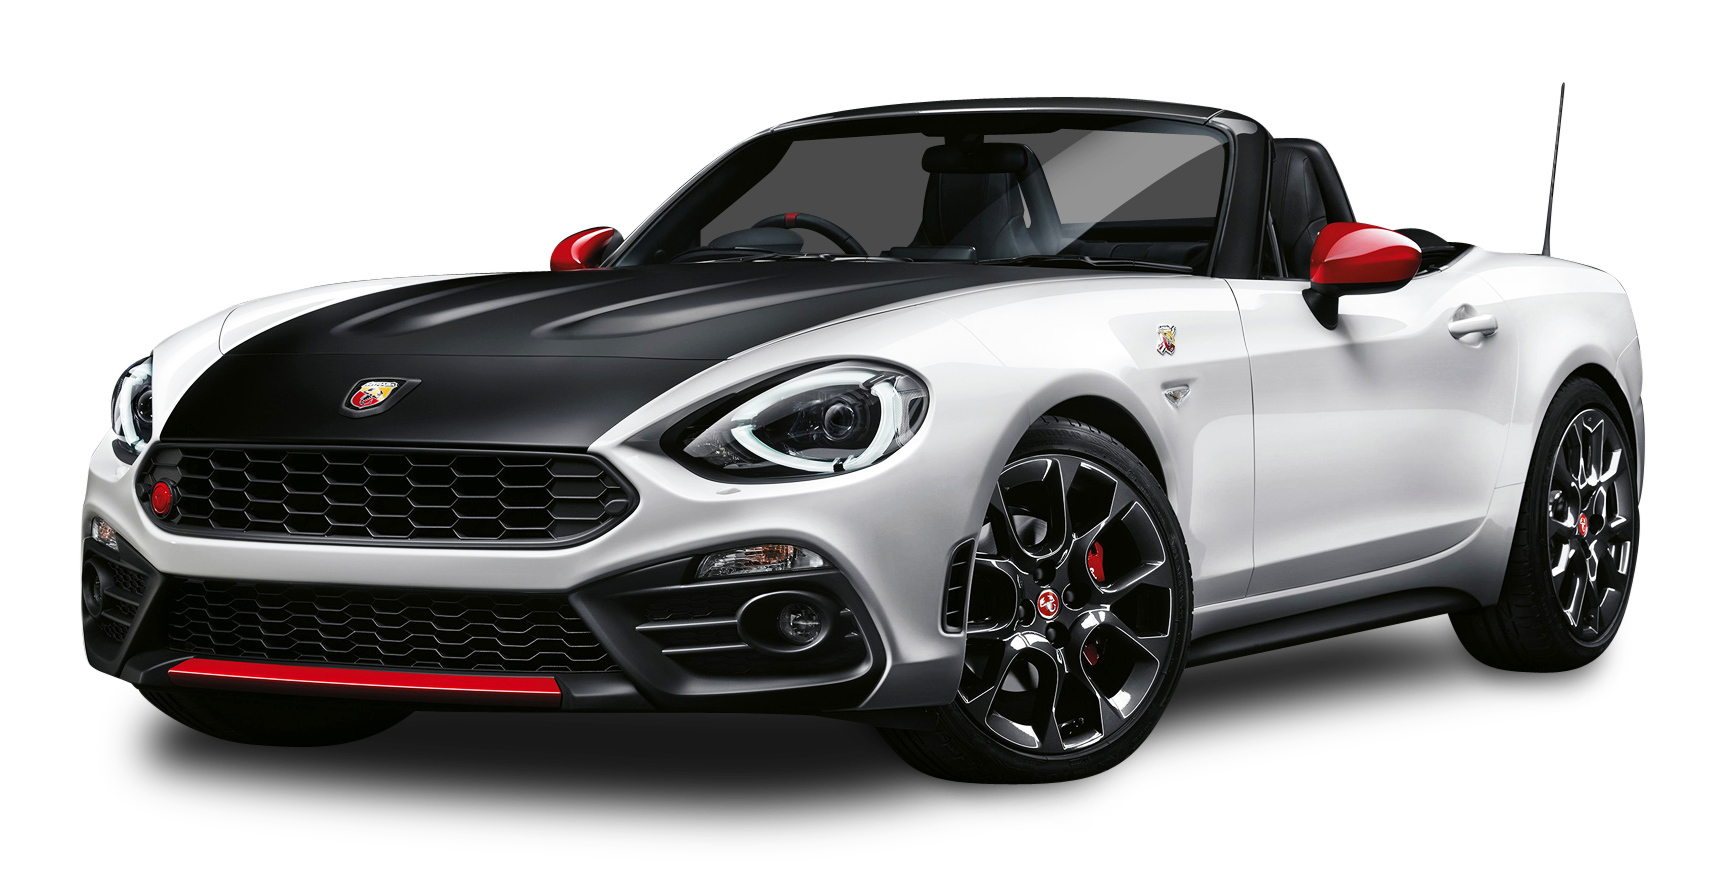 Chiptuning Abarth 124 Spider